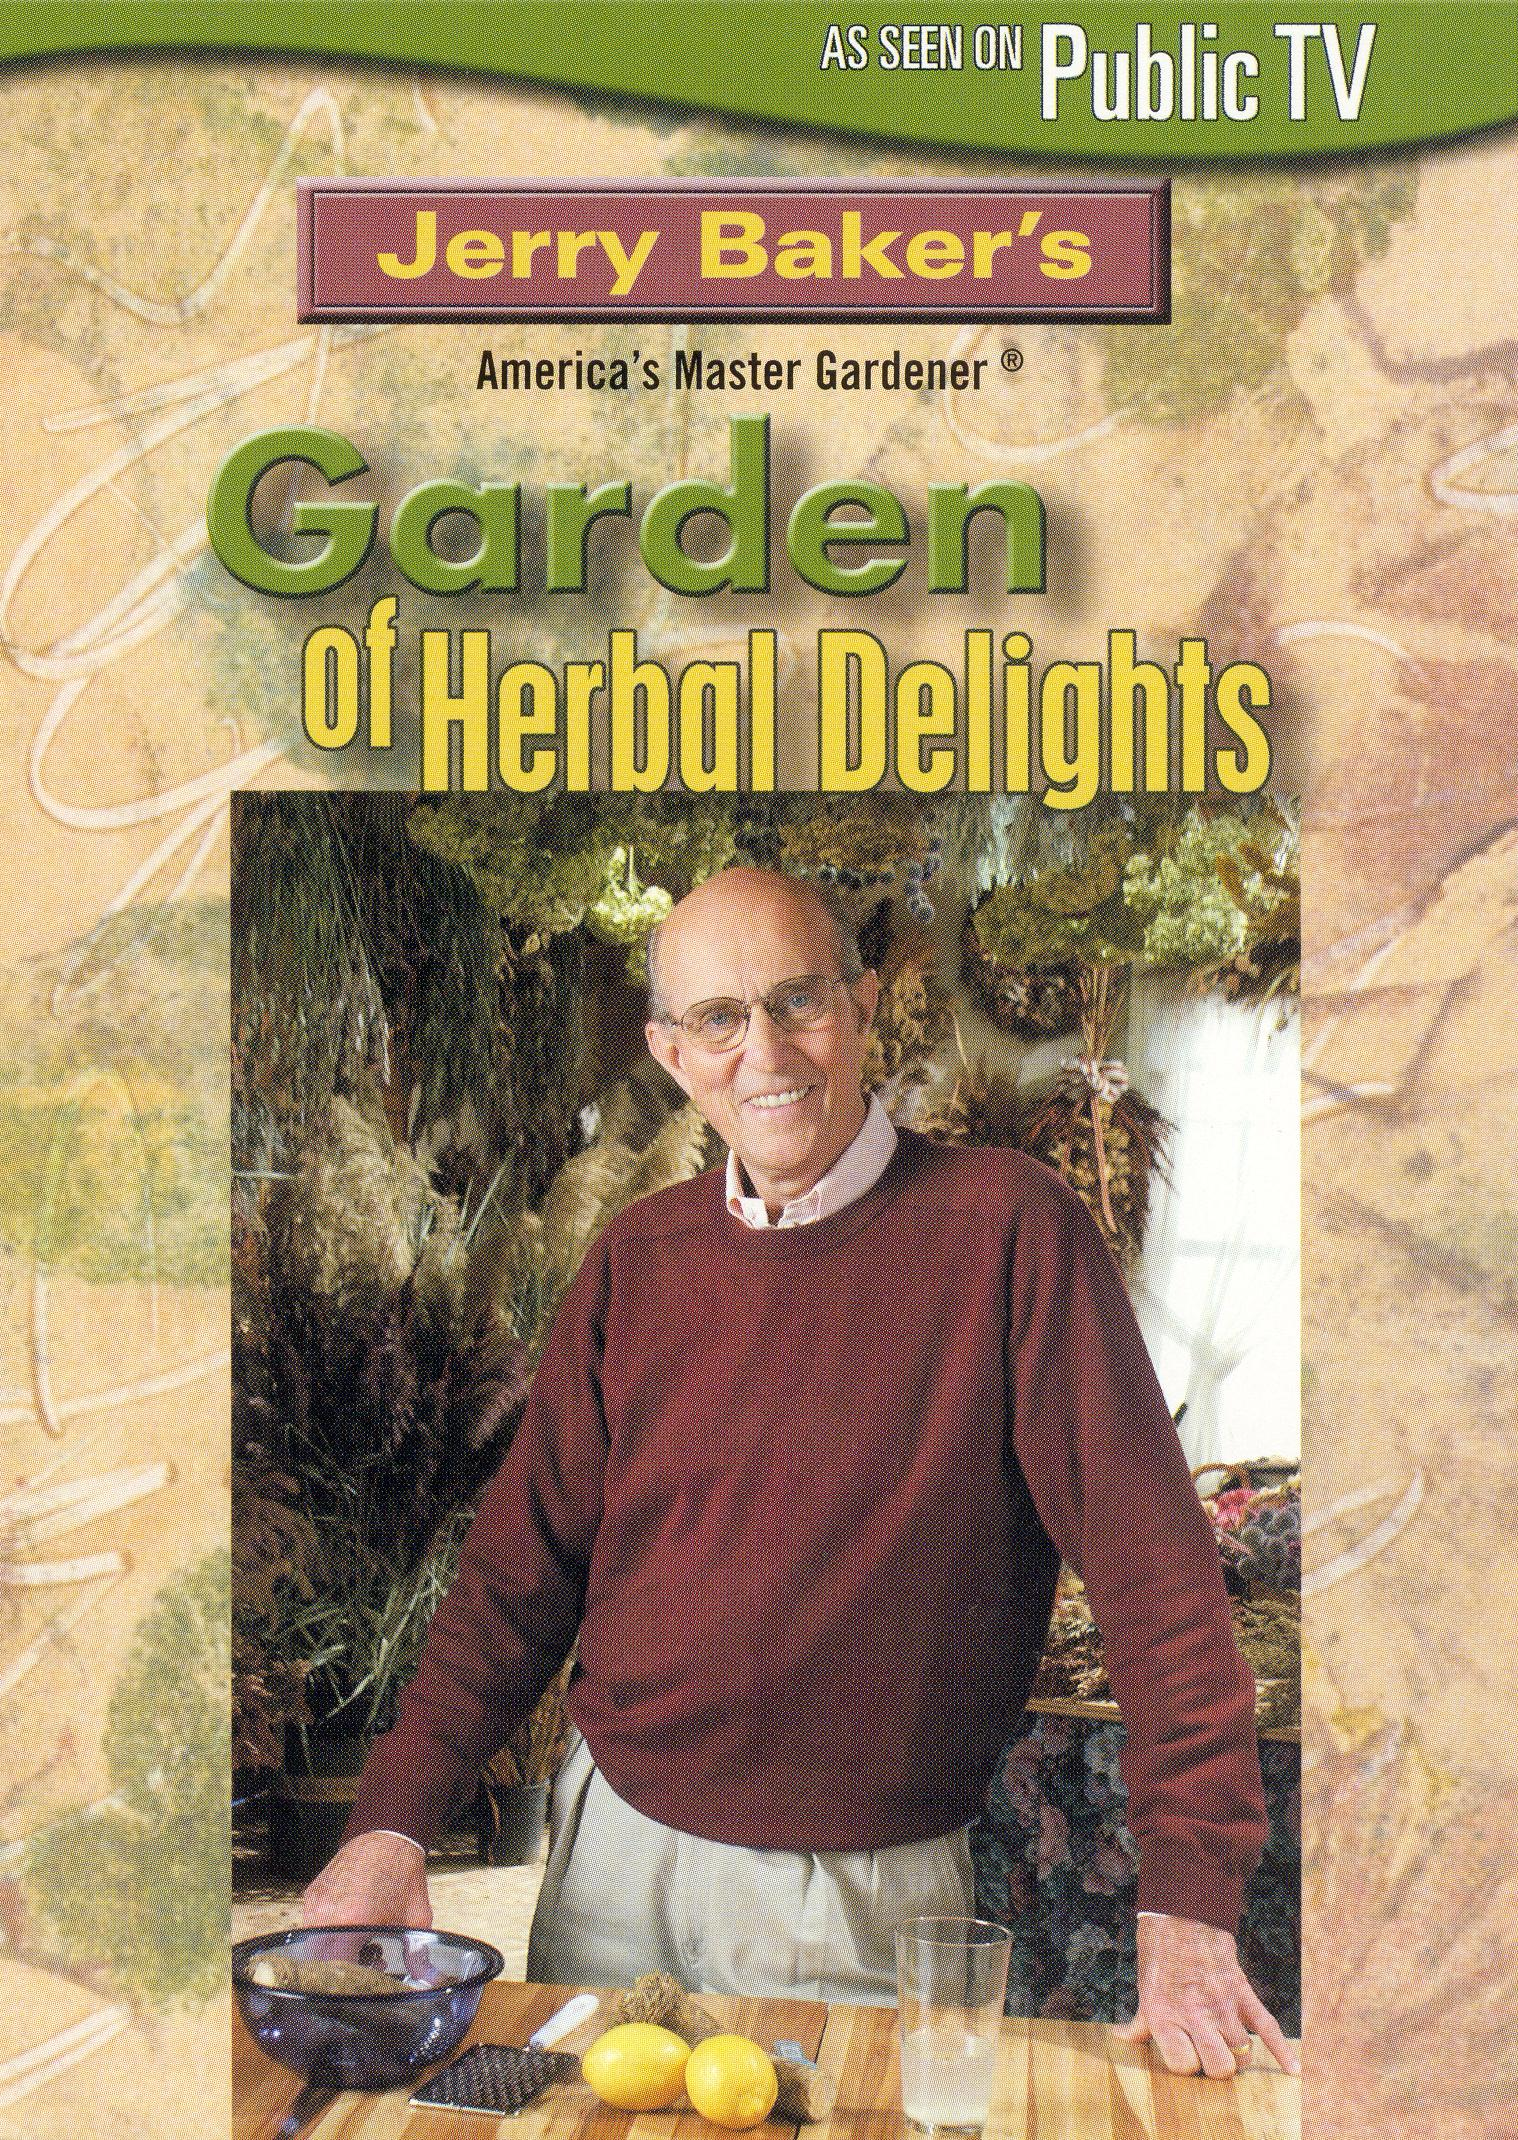 Jerry Baker's Gaden of Herbal Delights